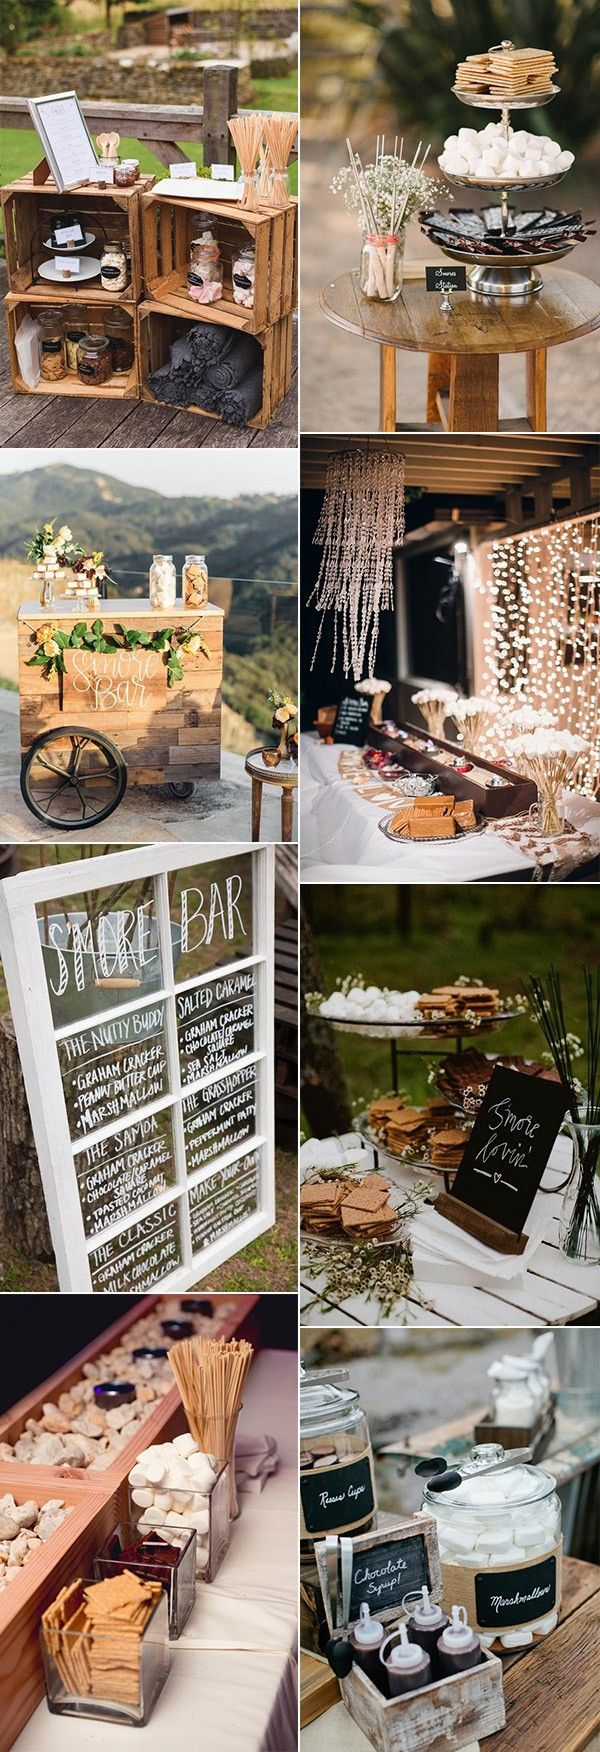 trending S'mores Bar wedding food ideas for 2018  #wedding #weddingfood #weddingideas